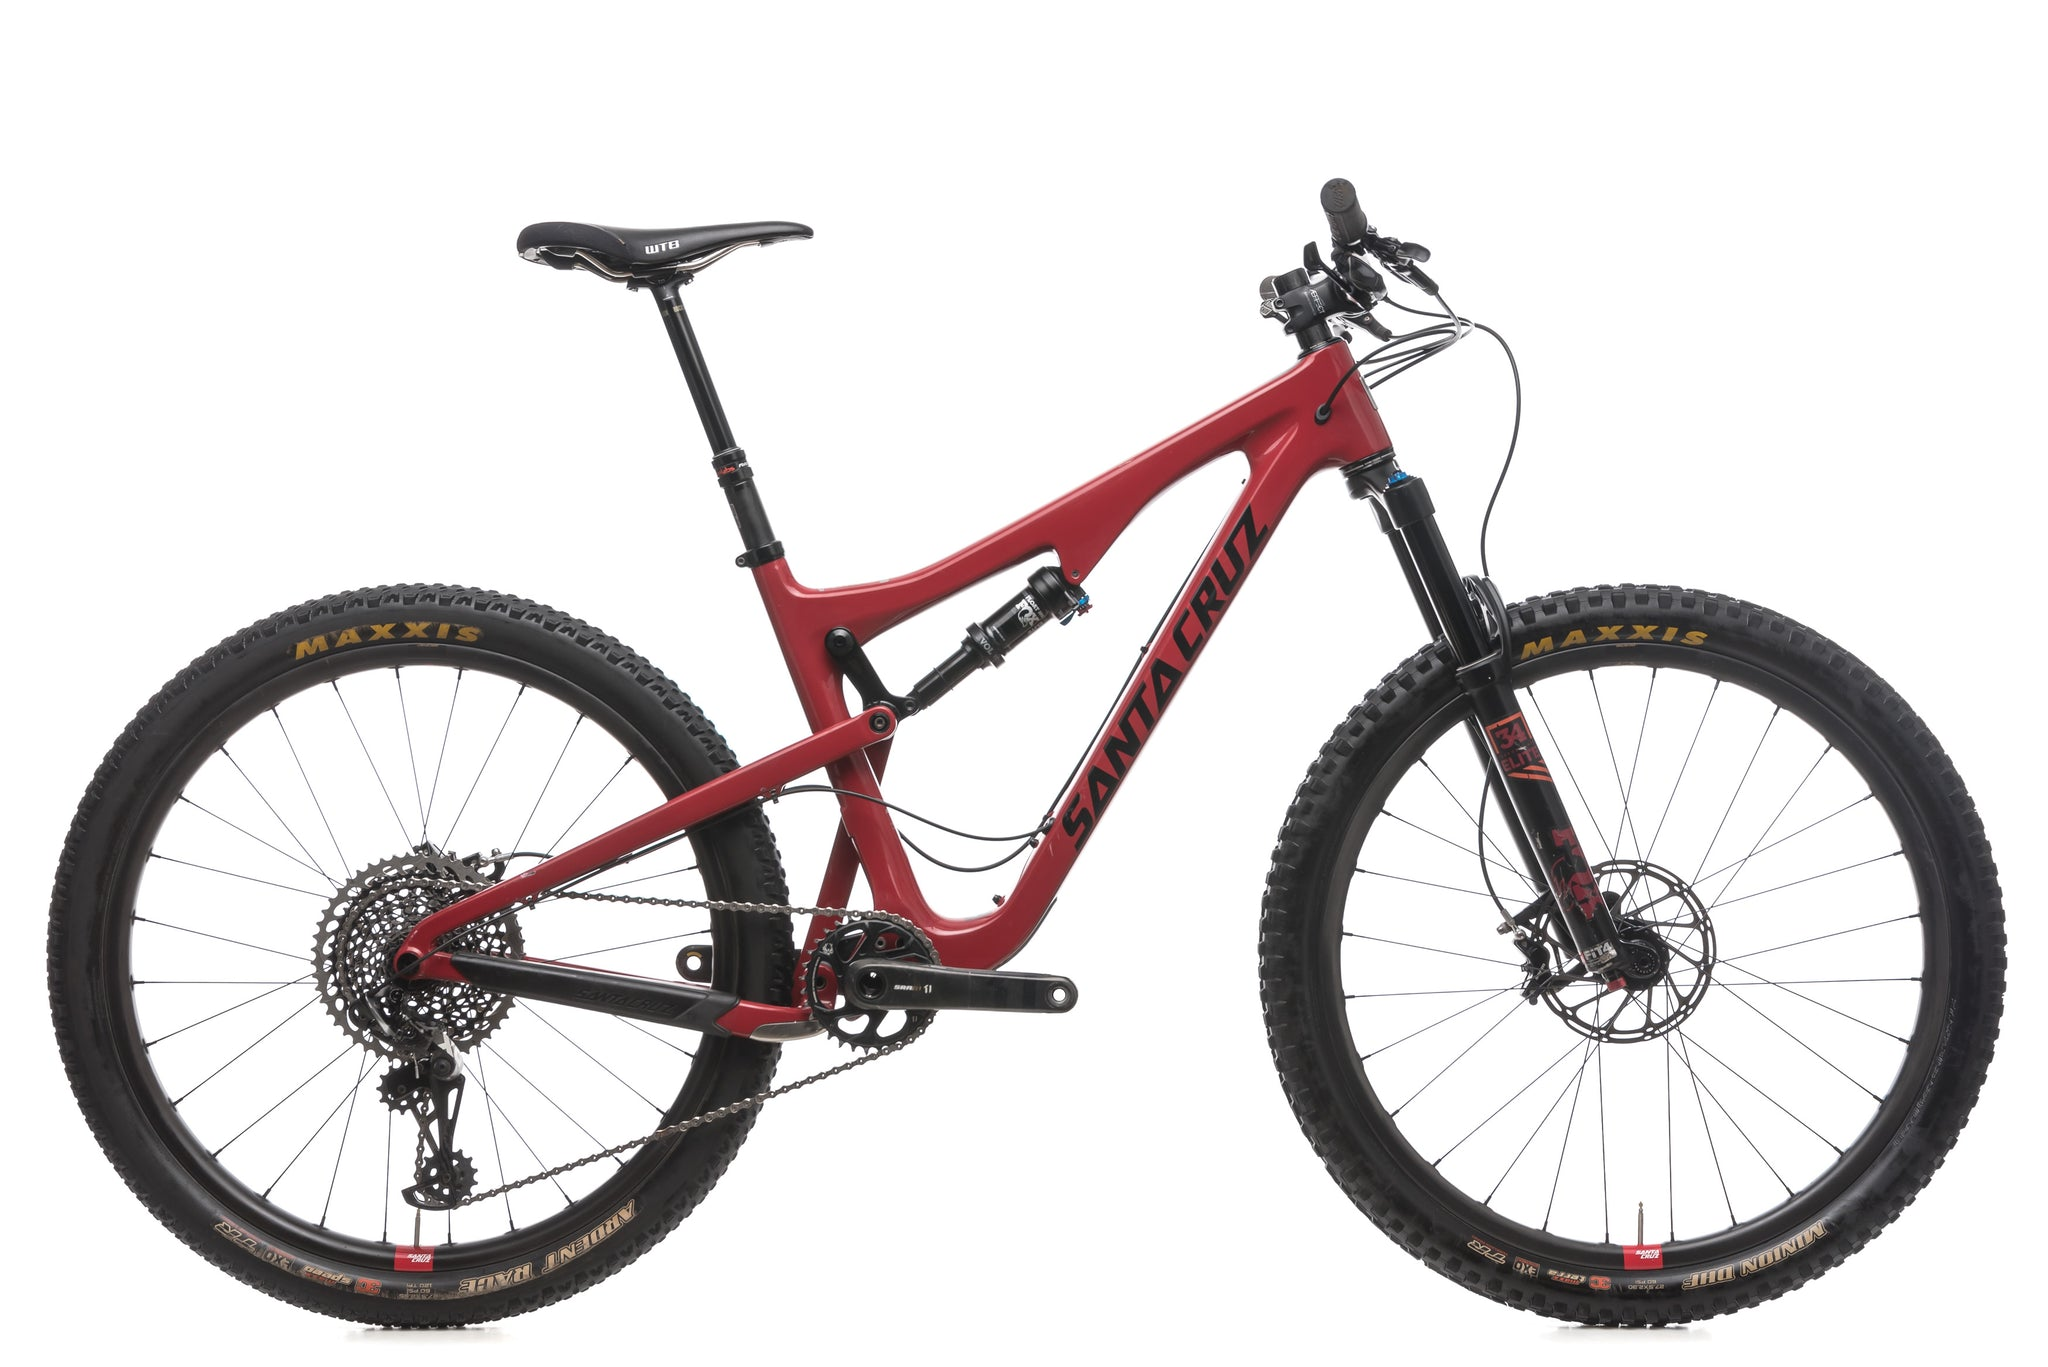 Santa Cruz 5010 2.1 CC Medium Bike - 2018